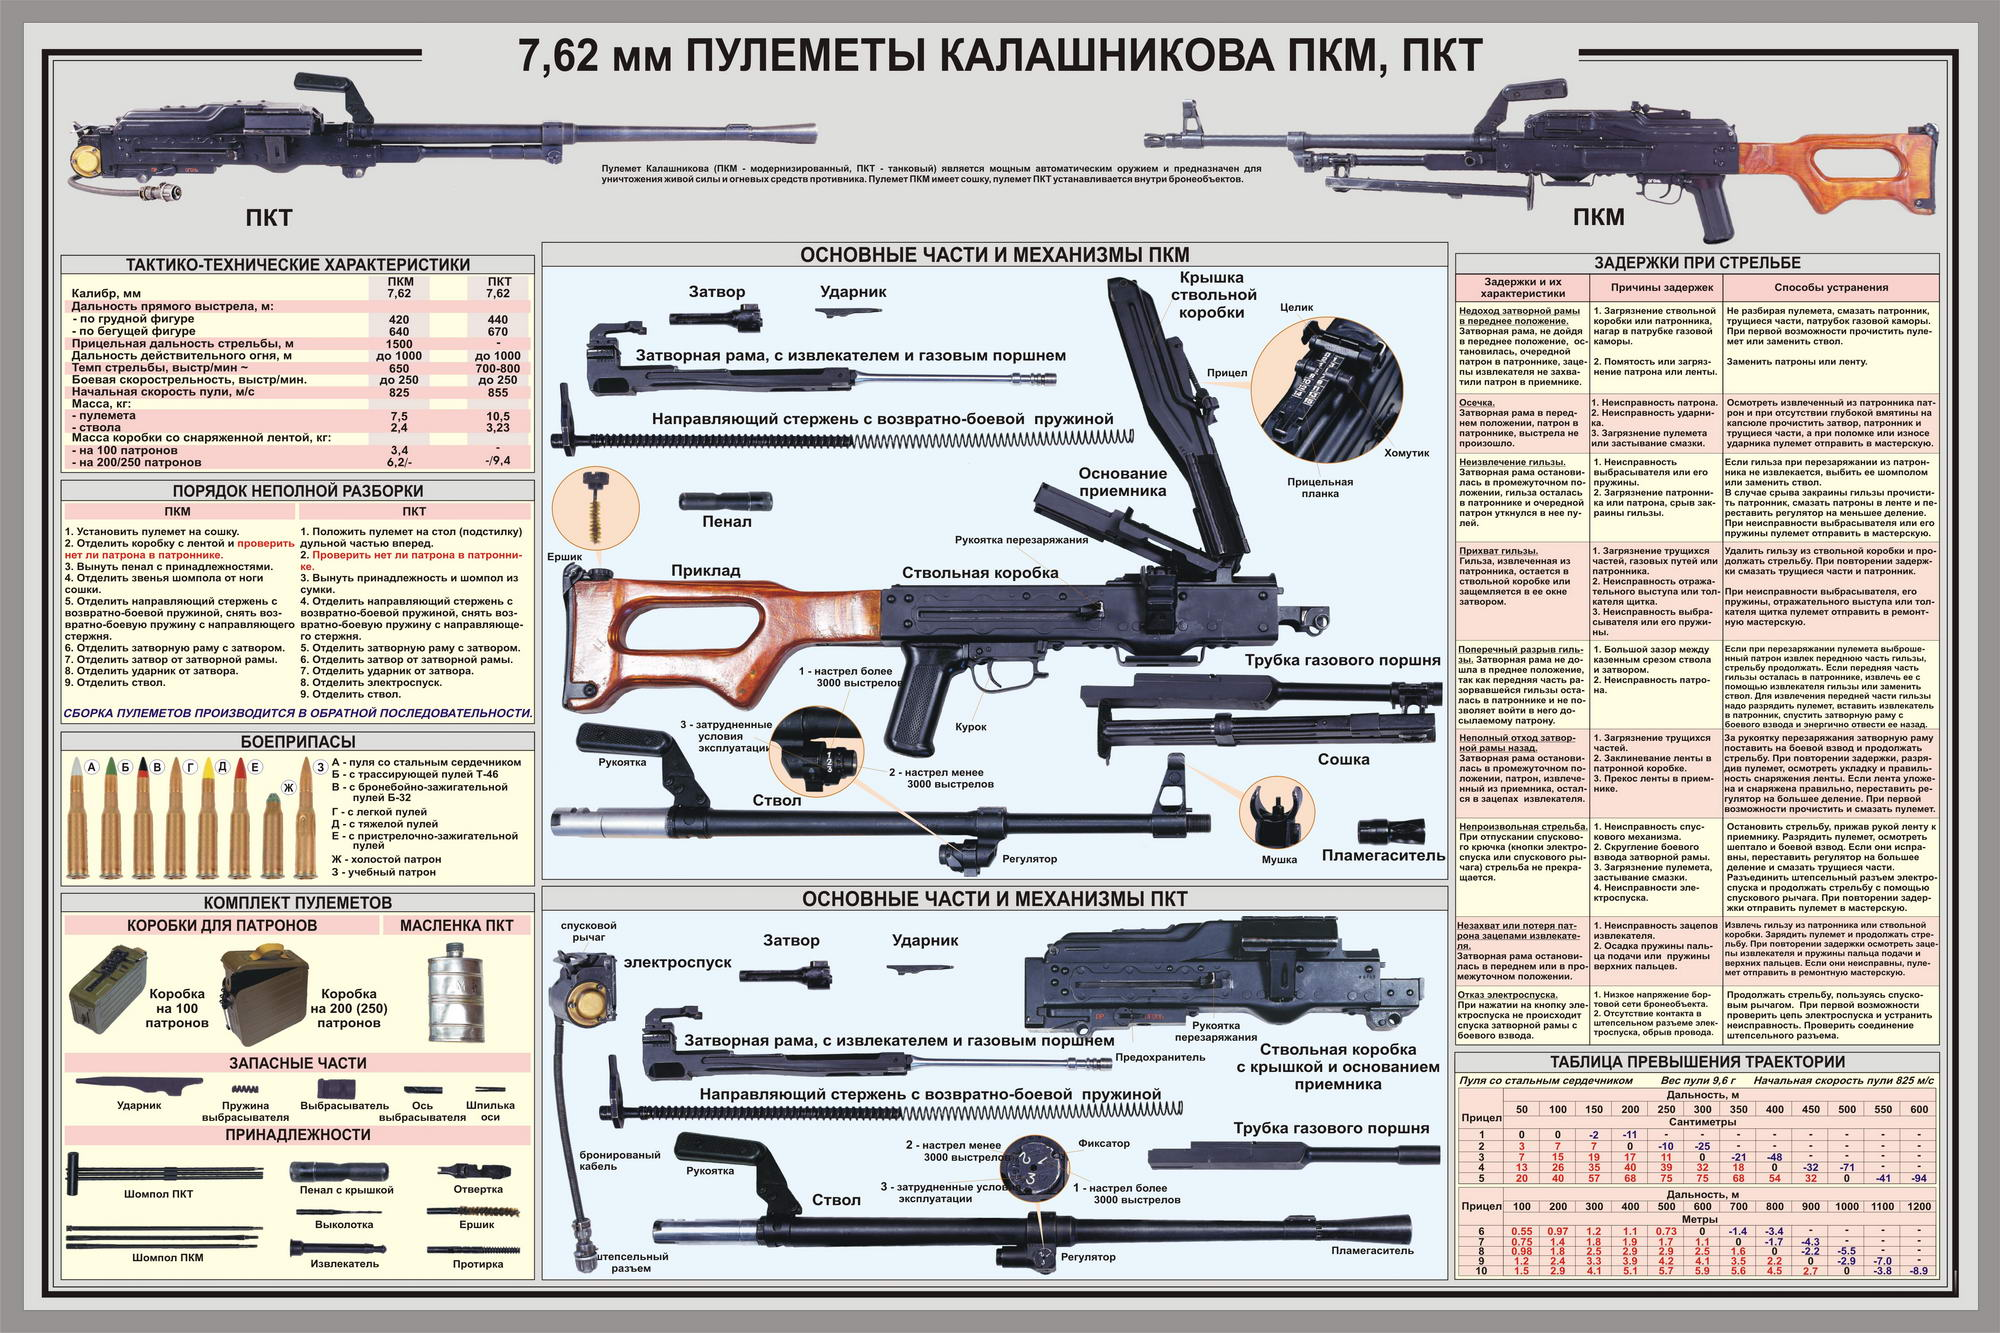 7.62 mm Kalashnikov PKM, PKT Machineguns